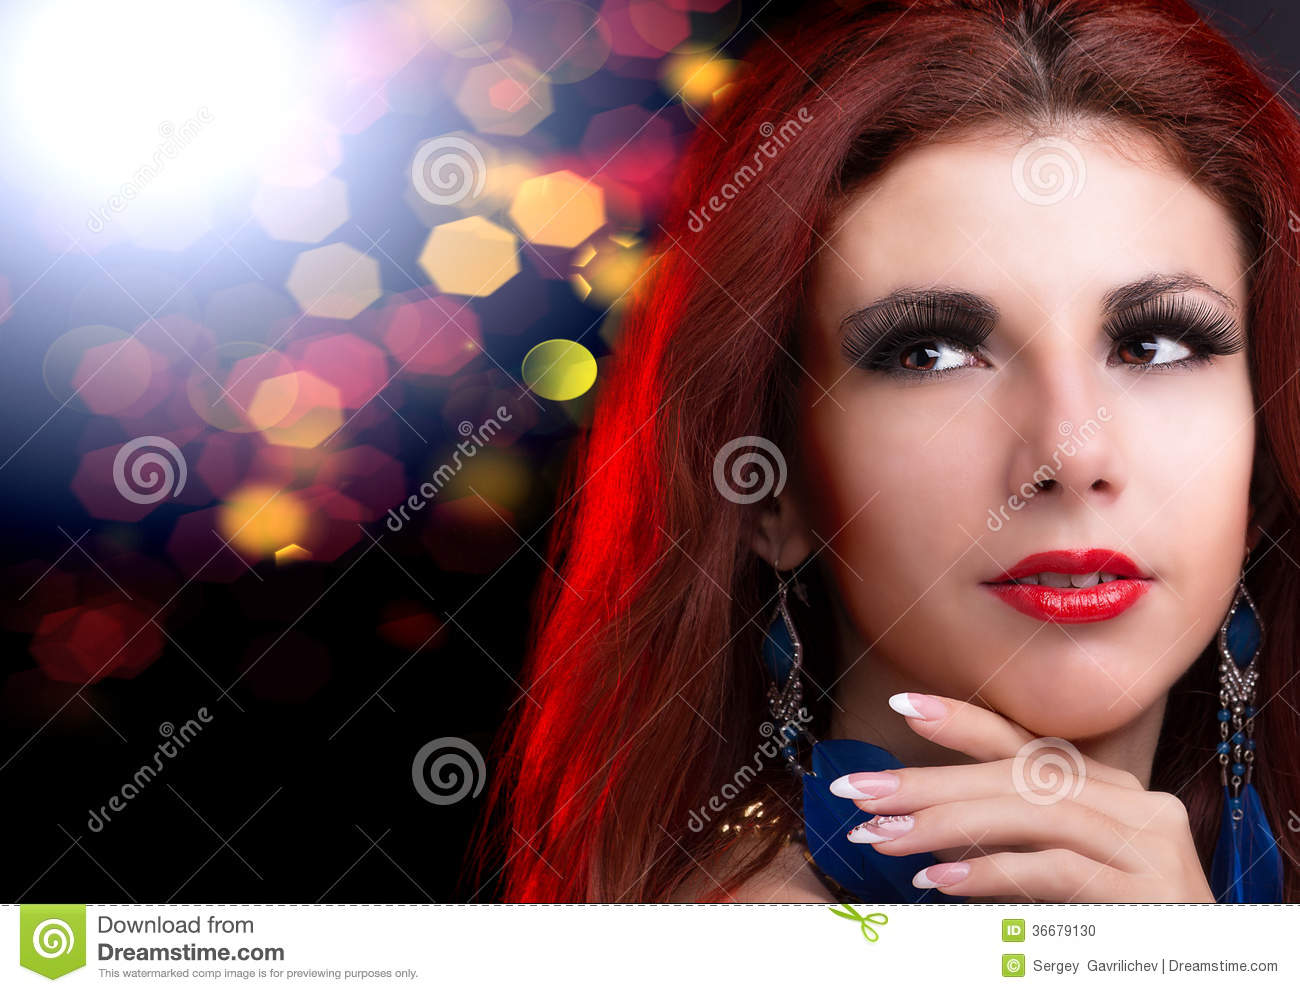 Glamour Beautiful Woman Stock Photo - Image 36679130